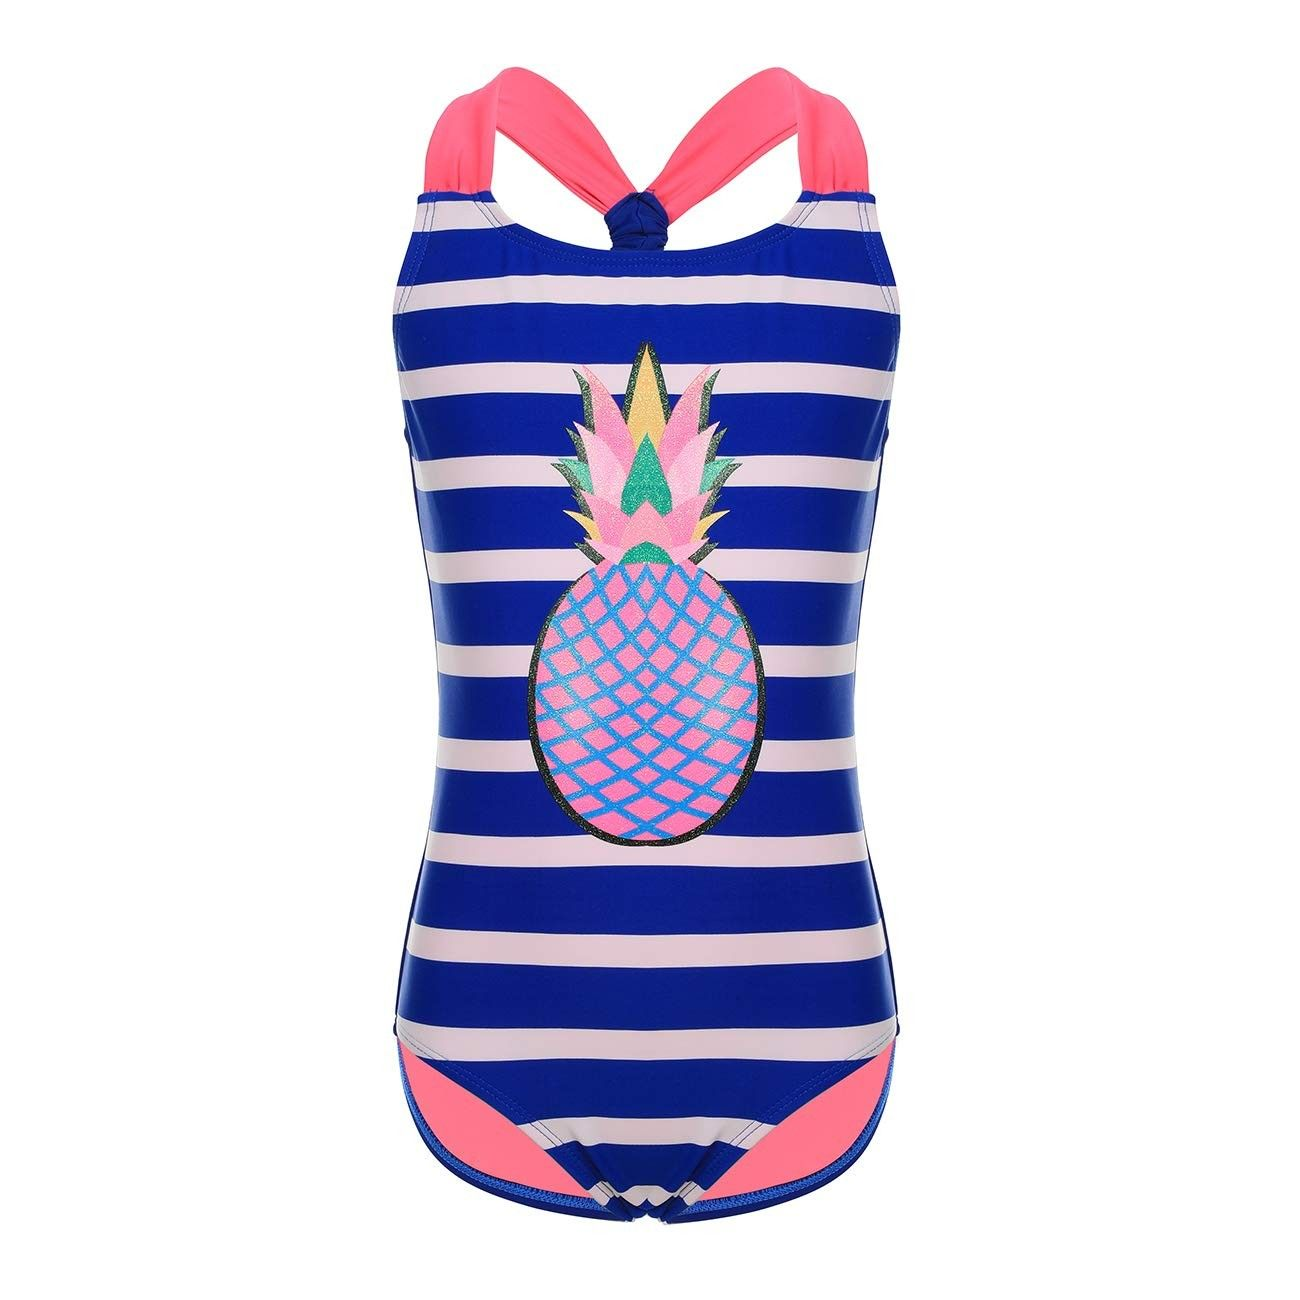 Girls' Beach Wear Bathing Suit One Piece Swimsuit 6-14 Years - Pineapple_dark Blue - CT18IIOXCU0 - S...